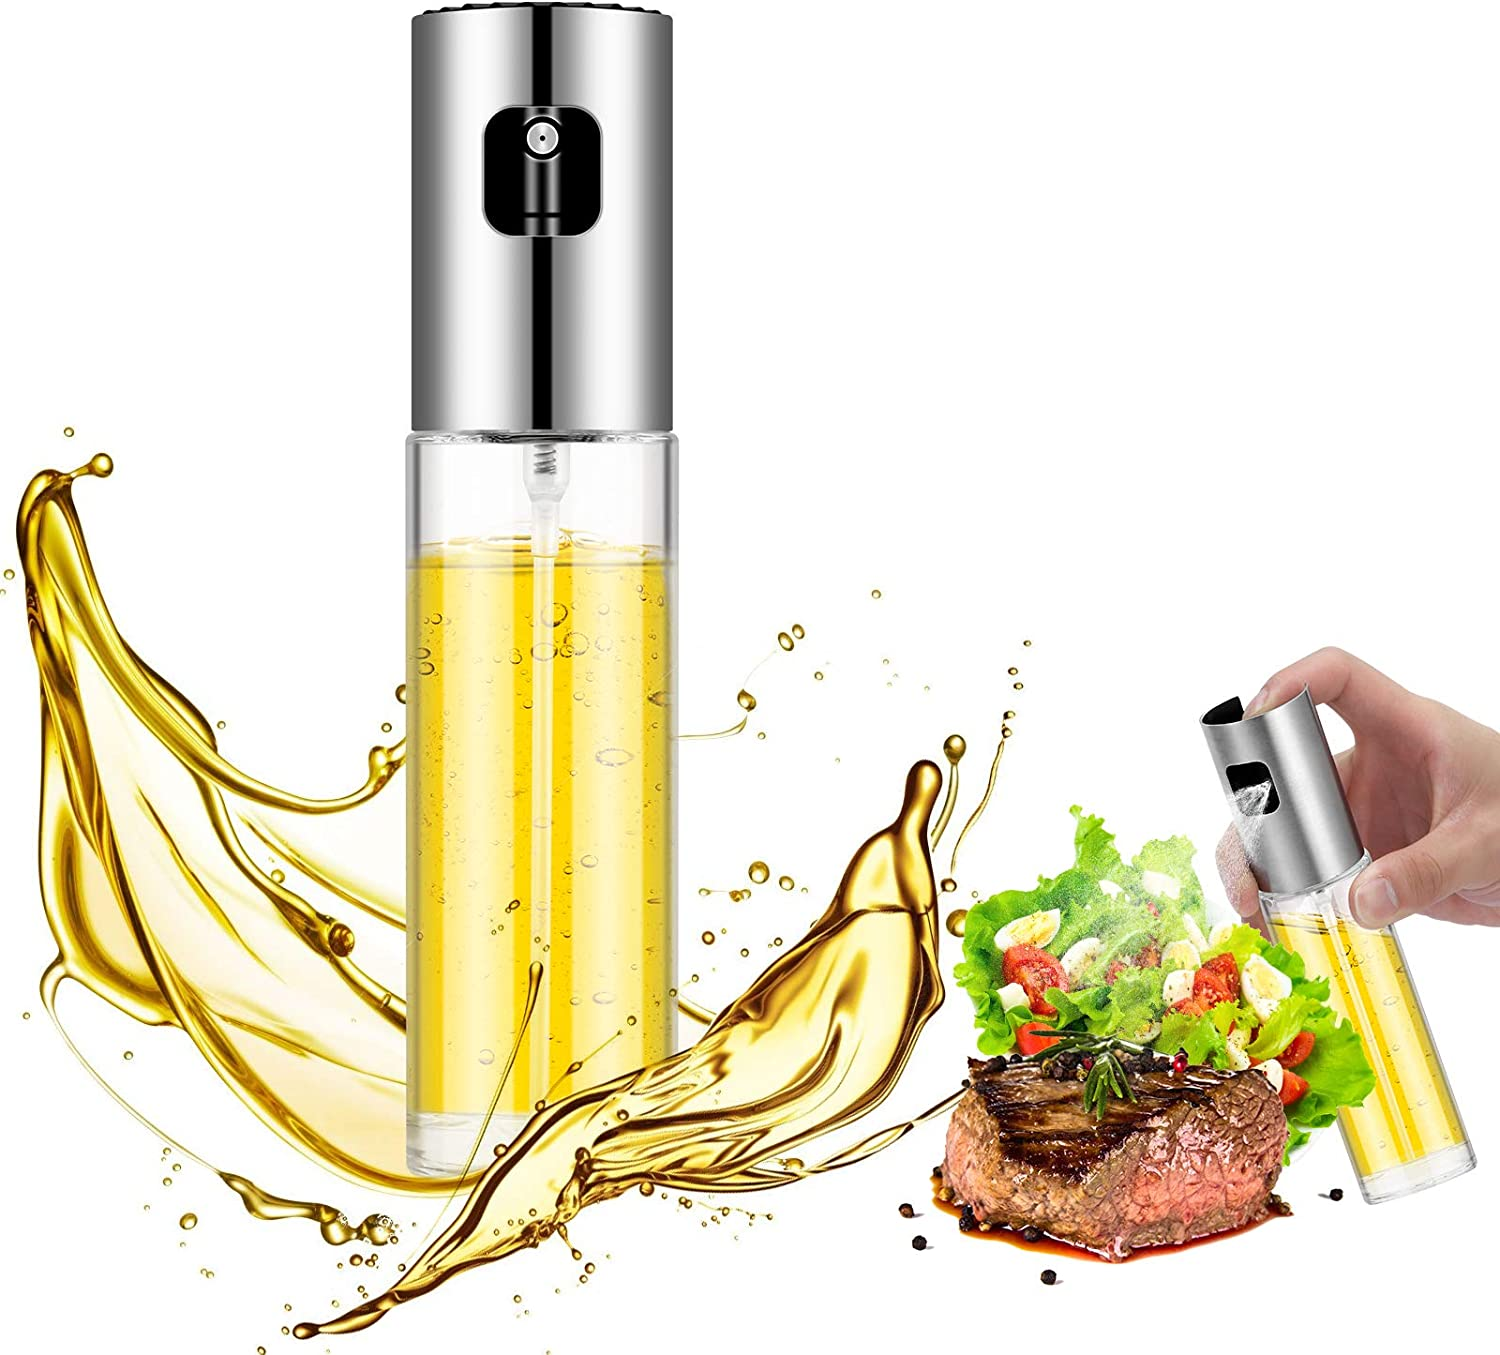 Oil Sprayer for Cooking, Oil Spray Bottle, Oil Dispenser Stainless Steel and Food Grade Glass, Olive Oil Spray for Roasting, Salad, Outdoor Barbecue, Baking